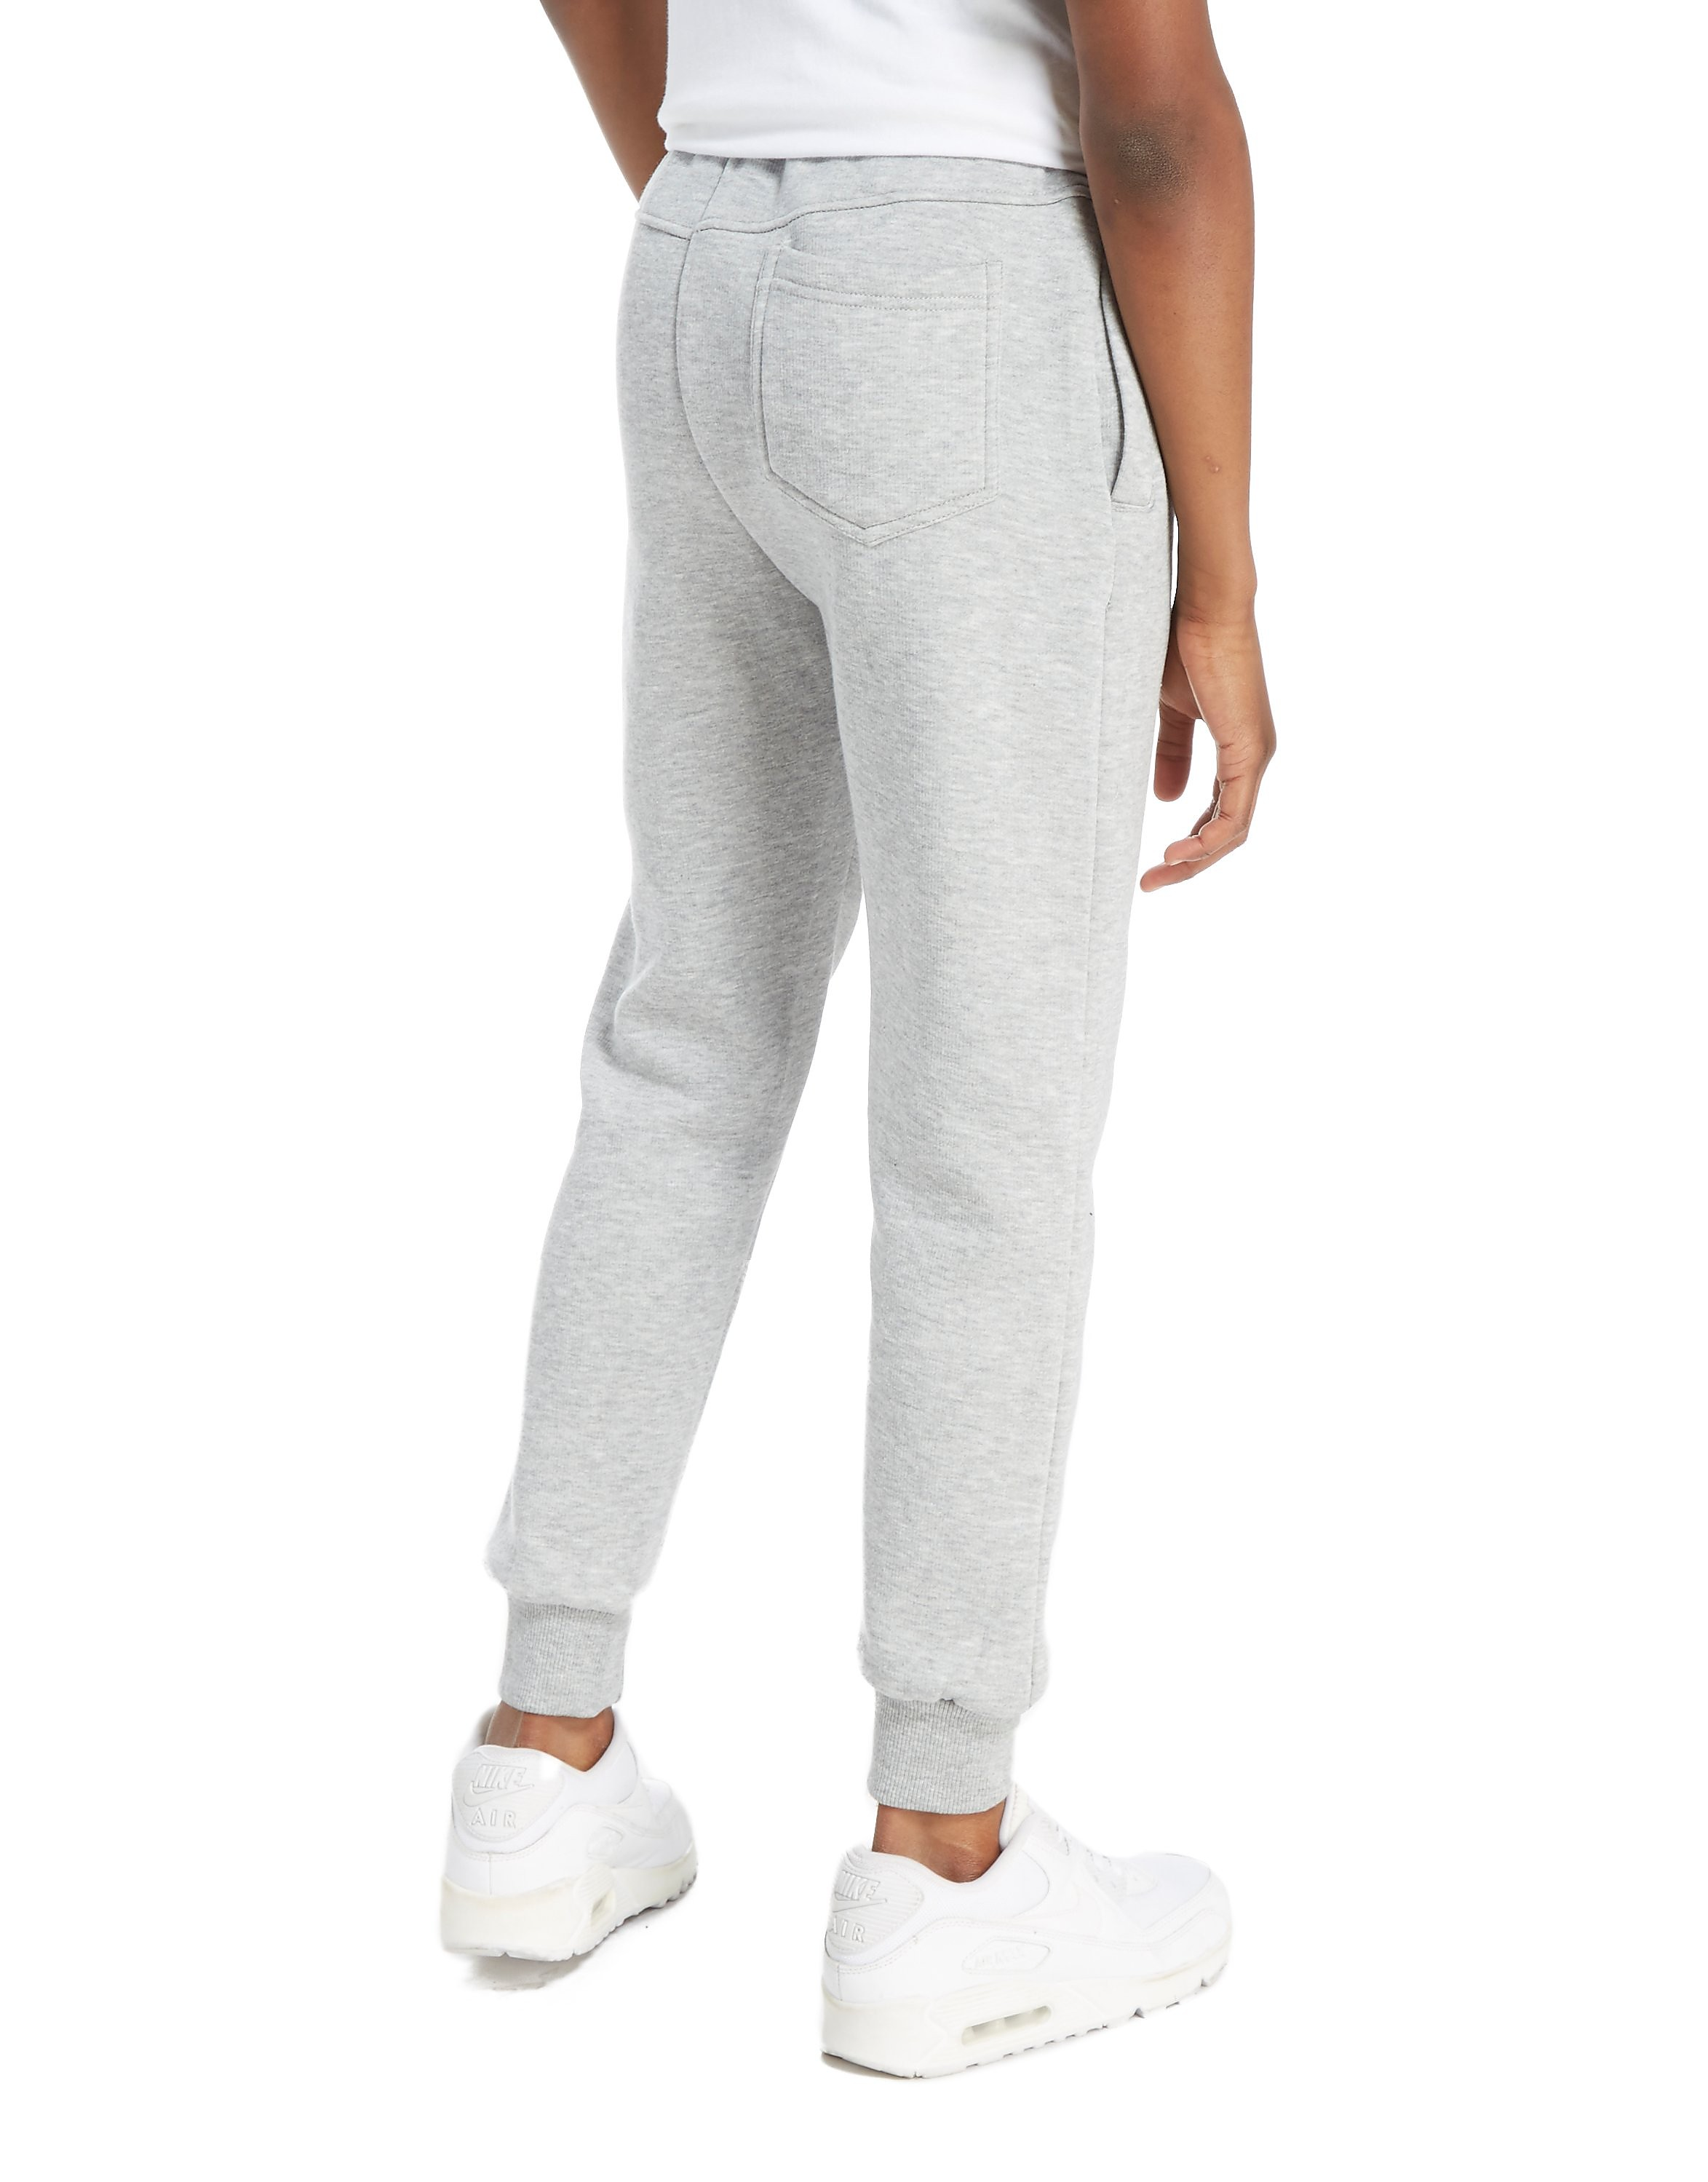 McKenzie Norton Fleece Pants Junior